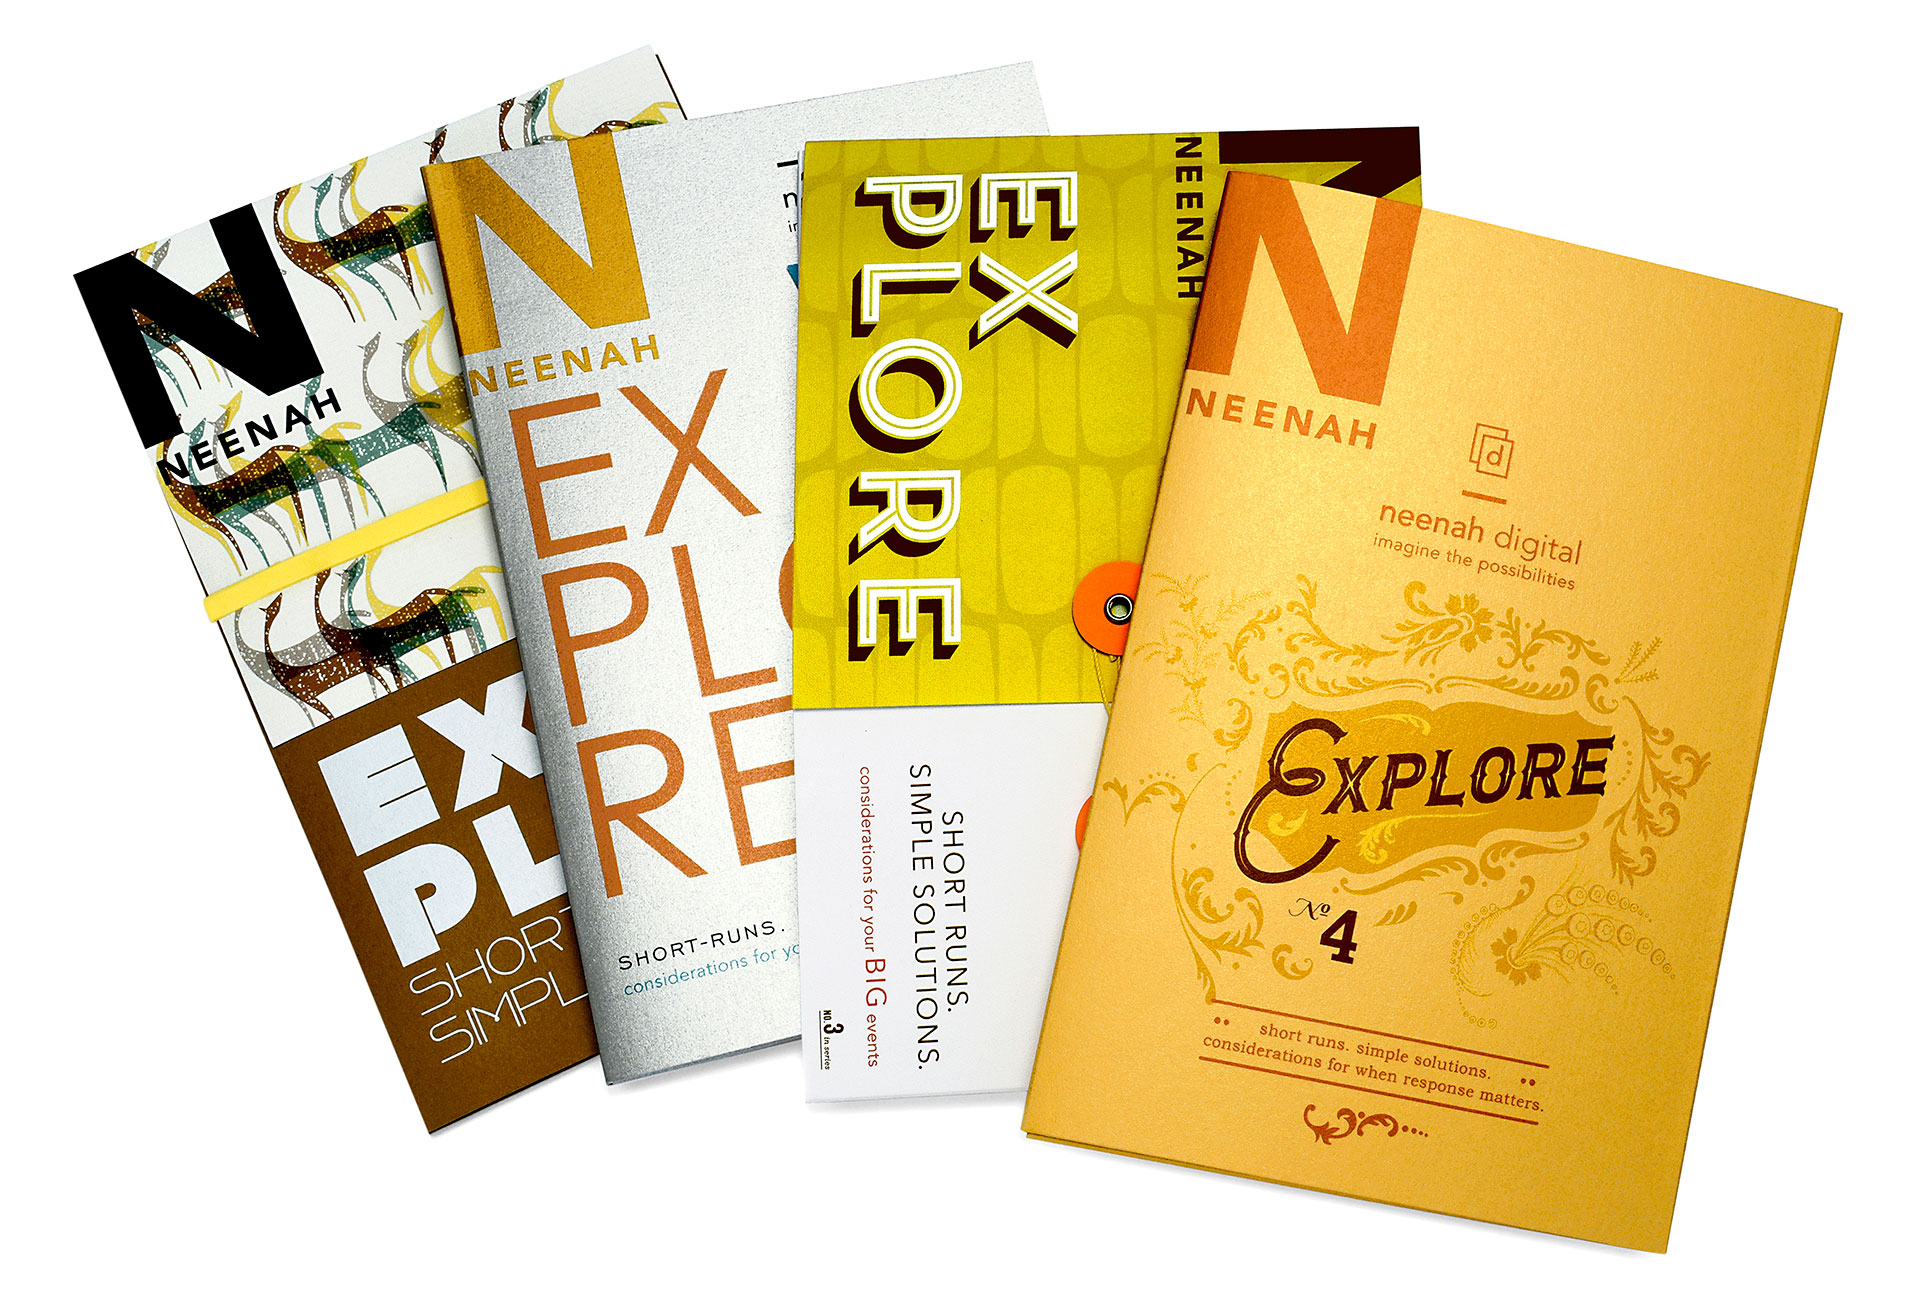 neenah papers Paper people like videos too a new lookbook from neenah filled with imagery, techniques, and touch on neenah's most luxurious papers.